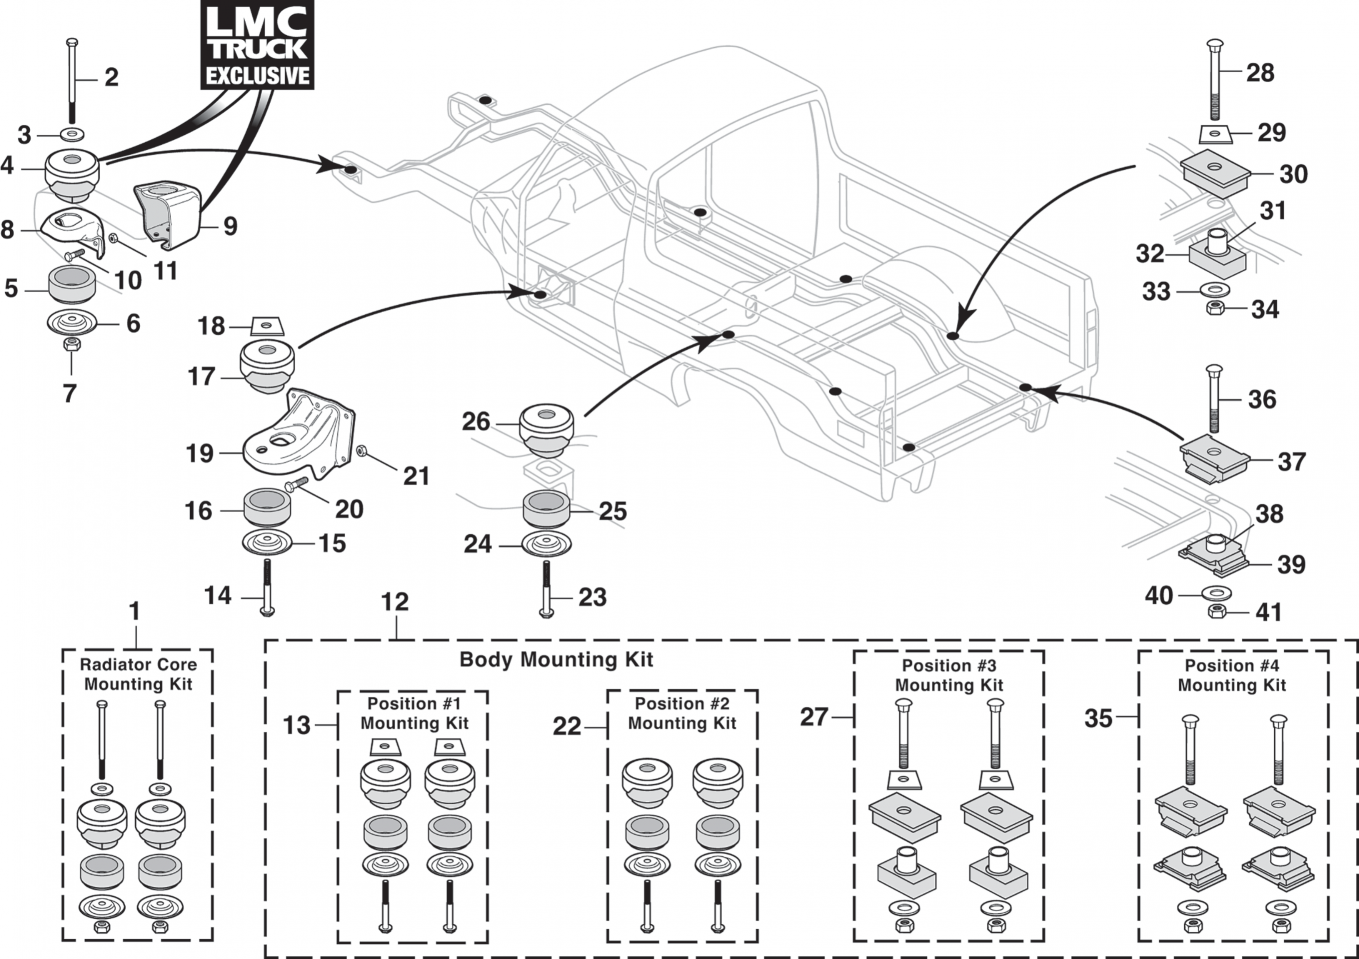 Body to Frame Mounting Hardware and Radiator Core Support